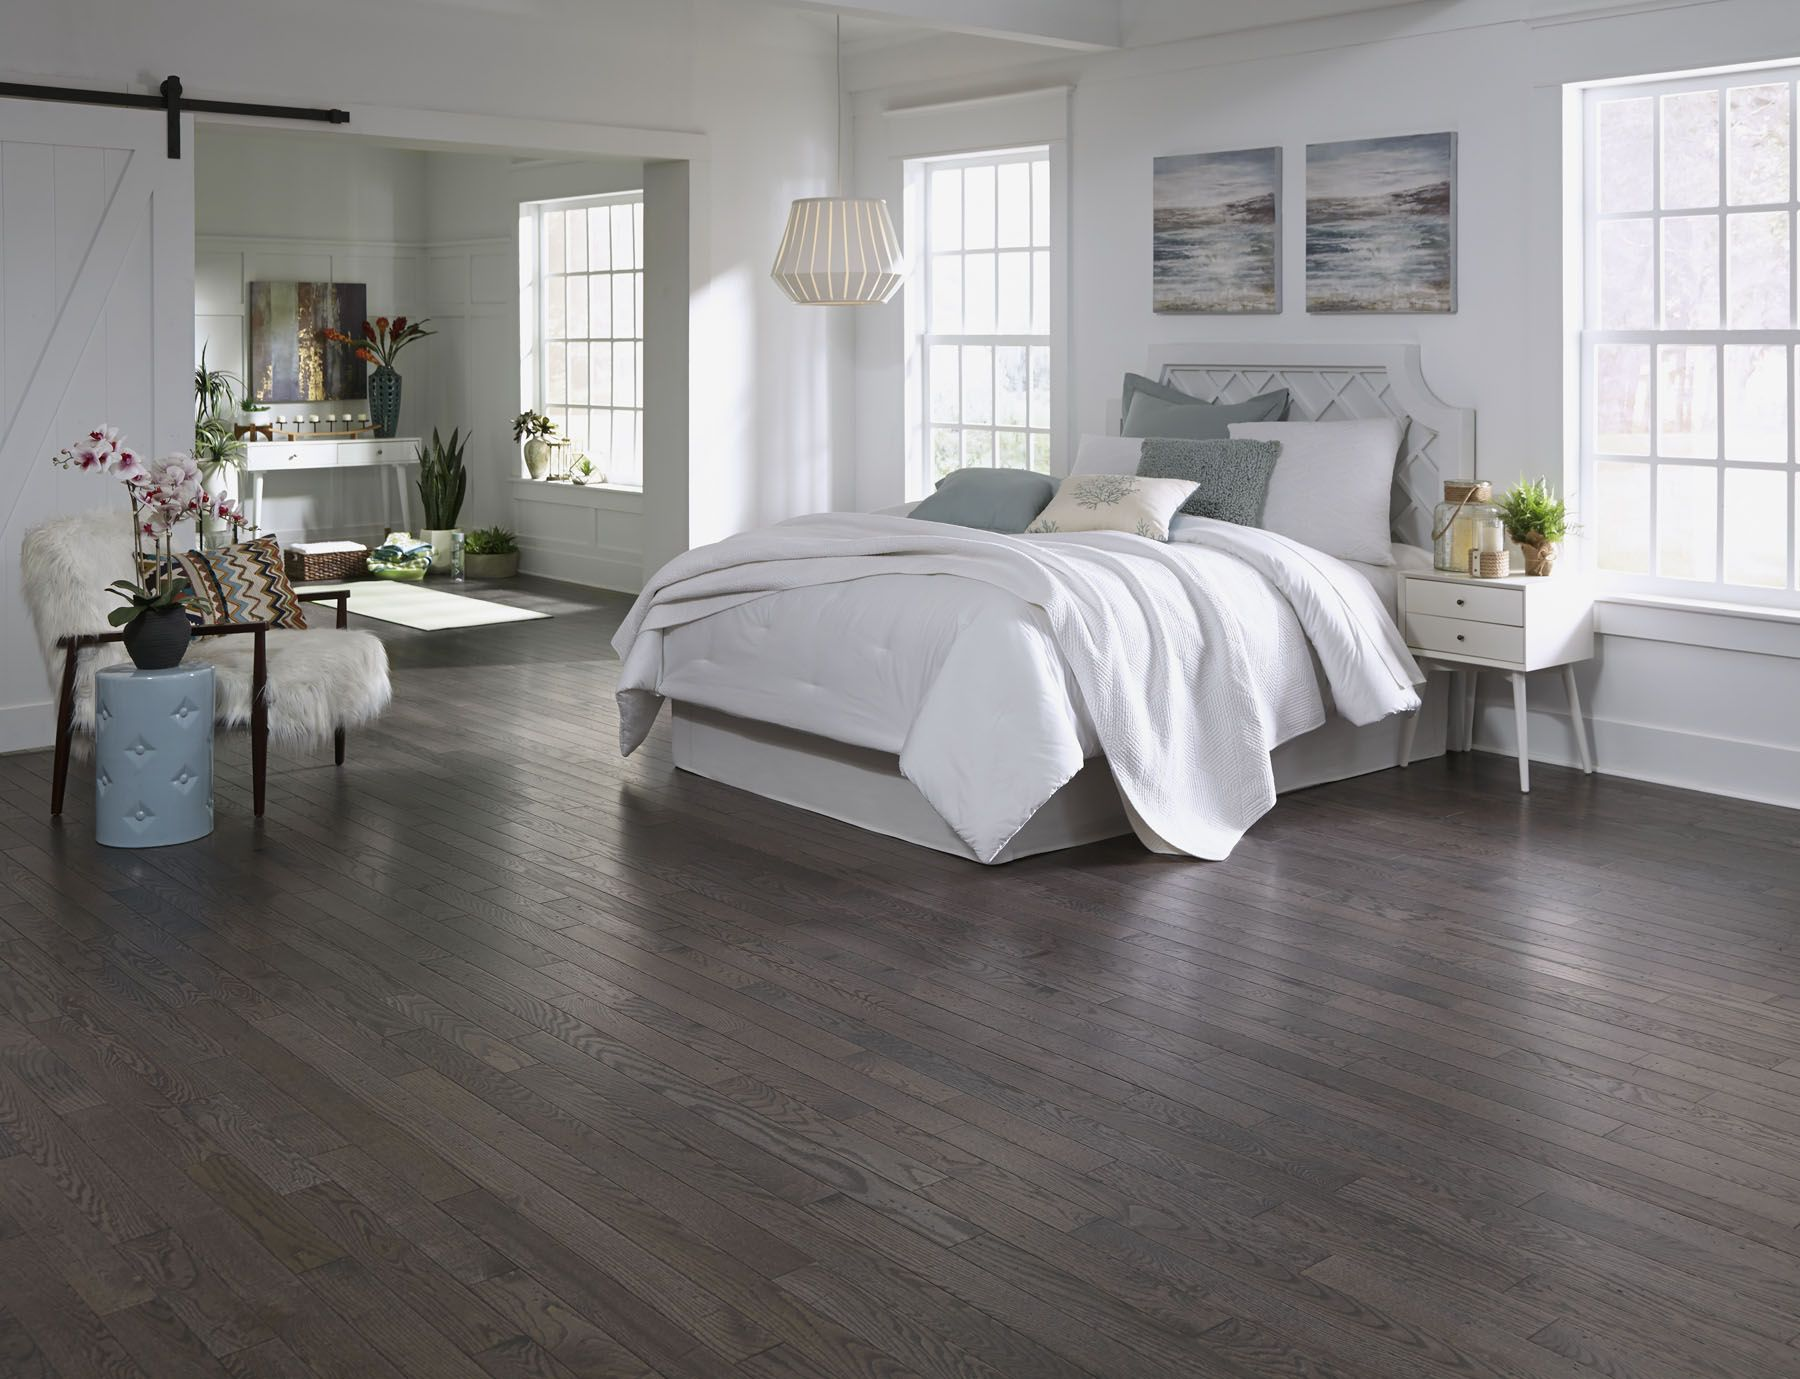 Virginia Mill Works Enchanted Forest Oak A Prefinished Distressed Solid Hardwood With A Gr Solid Hardwood Floors Hardwood Floors Dark Types Of Wood Flooring